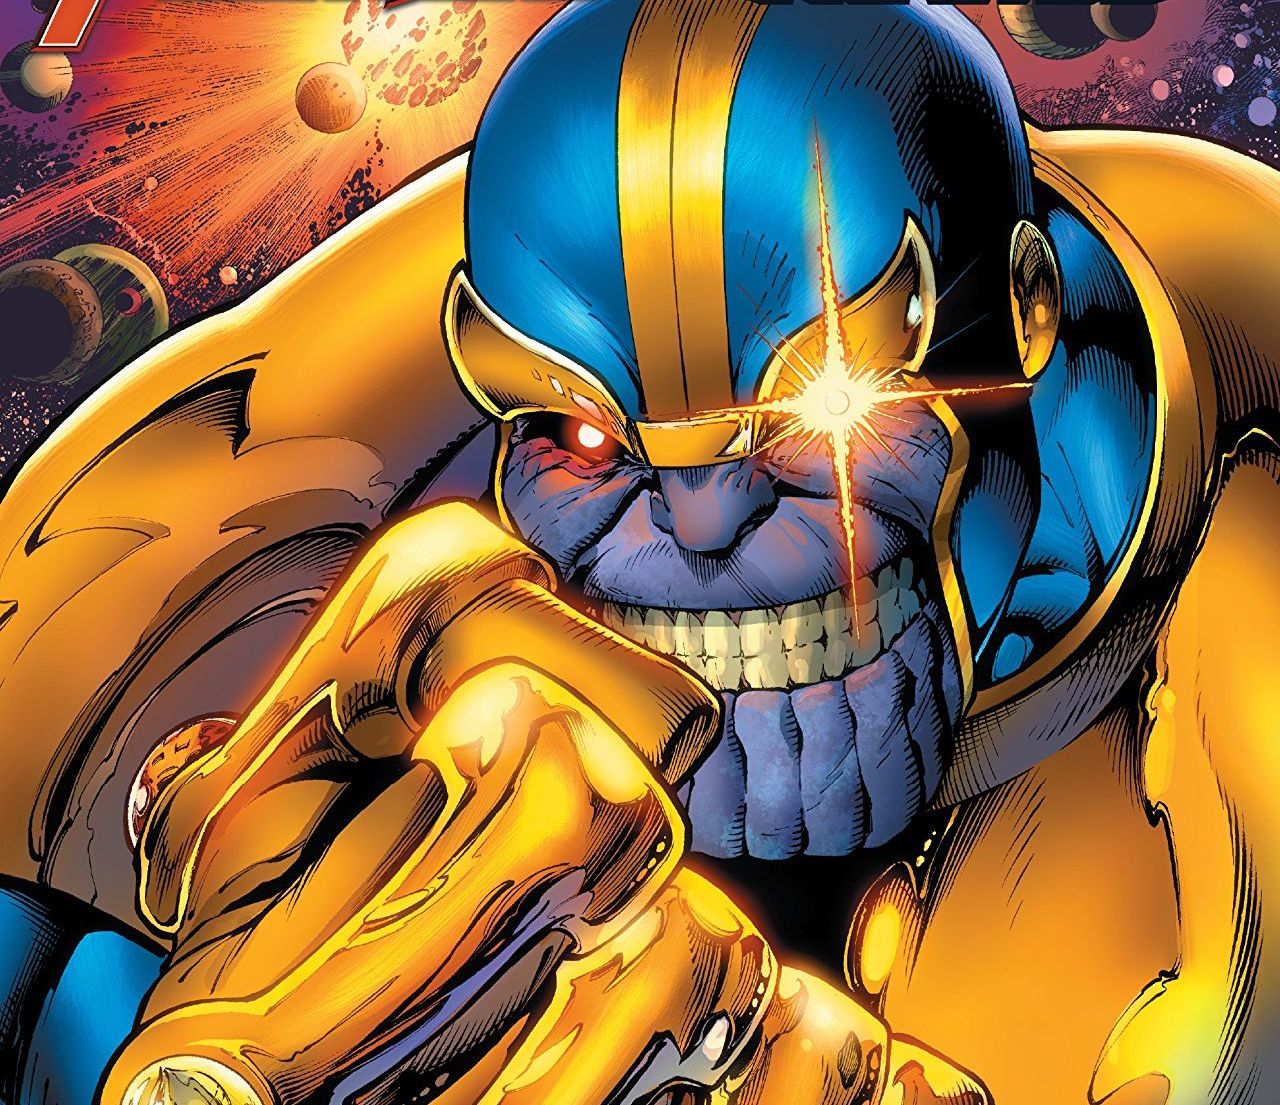 'Avengers vs. Thanos' review: An all-ages twist on Thanos